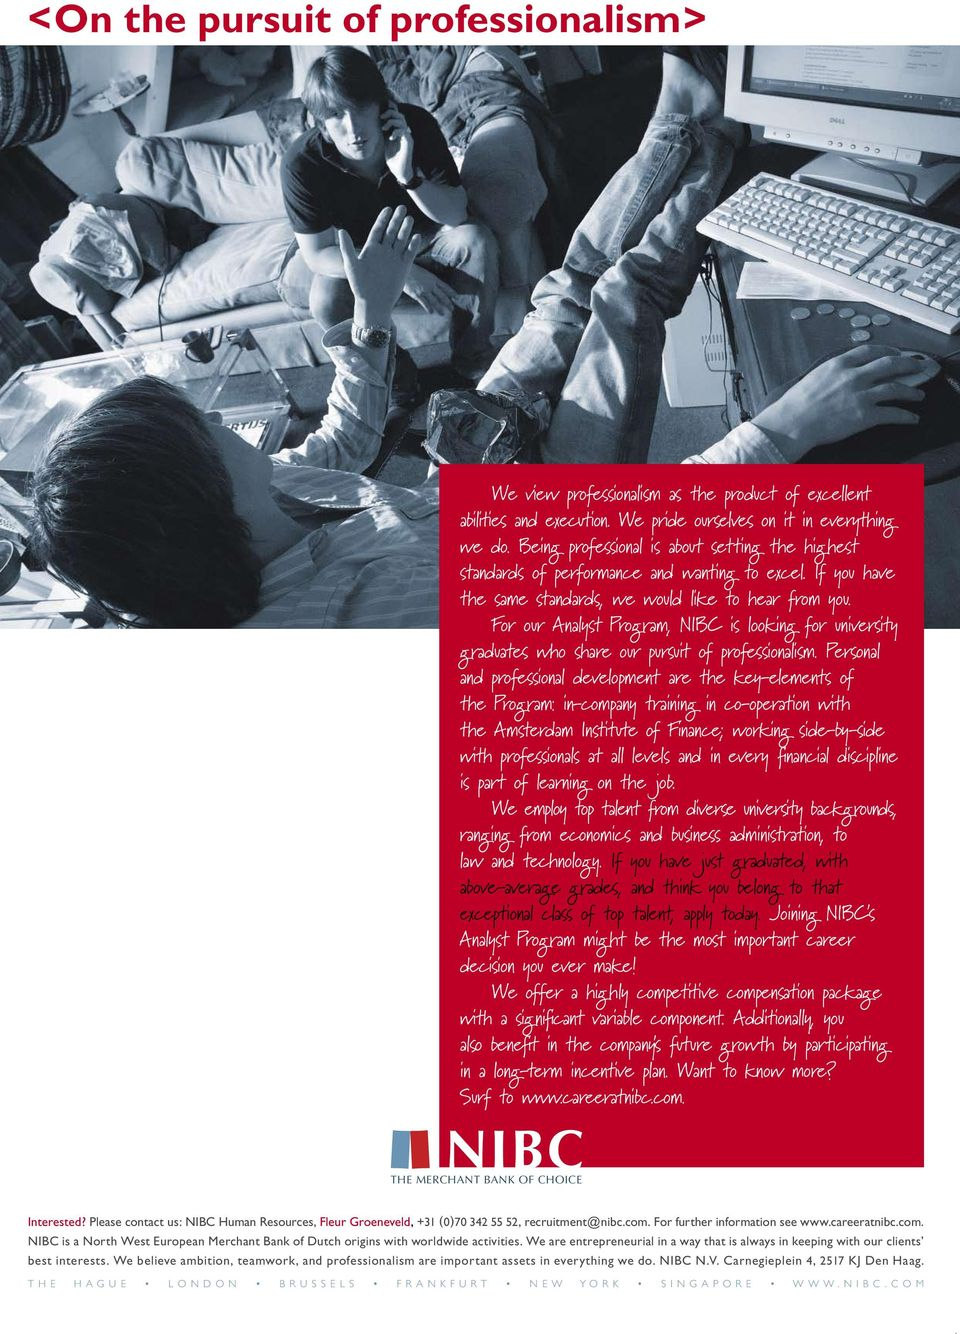 For our Analyst Program, NIBC is looking for university graduates who share our pursuit of professionalism.